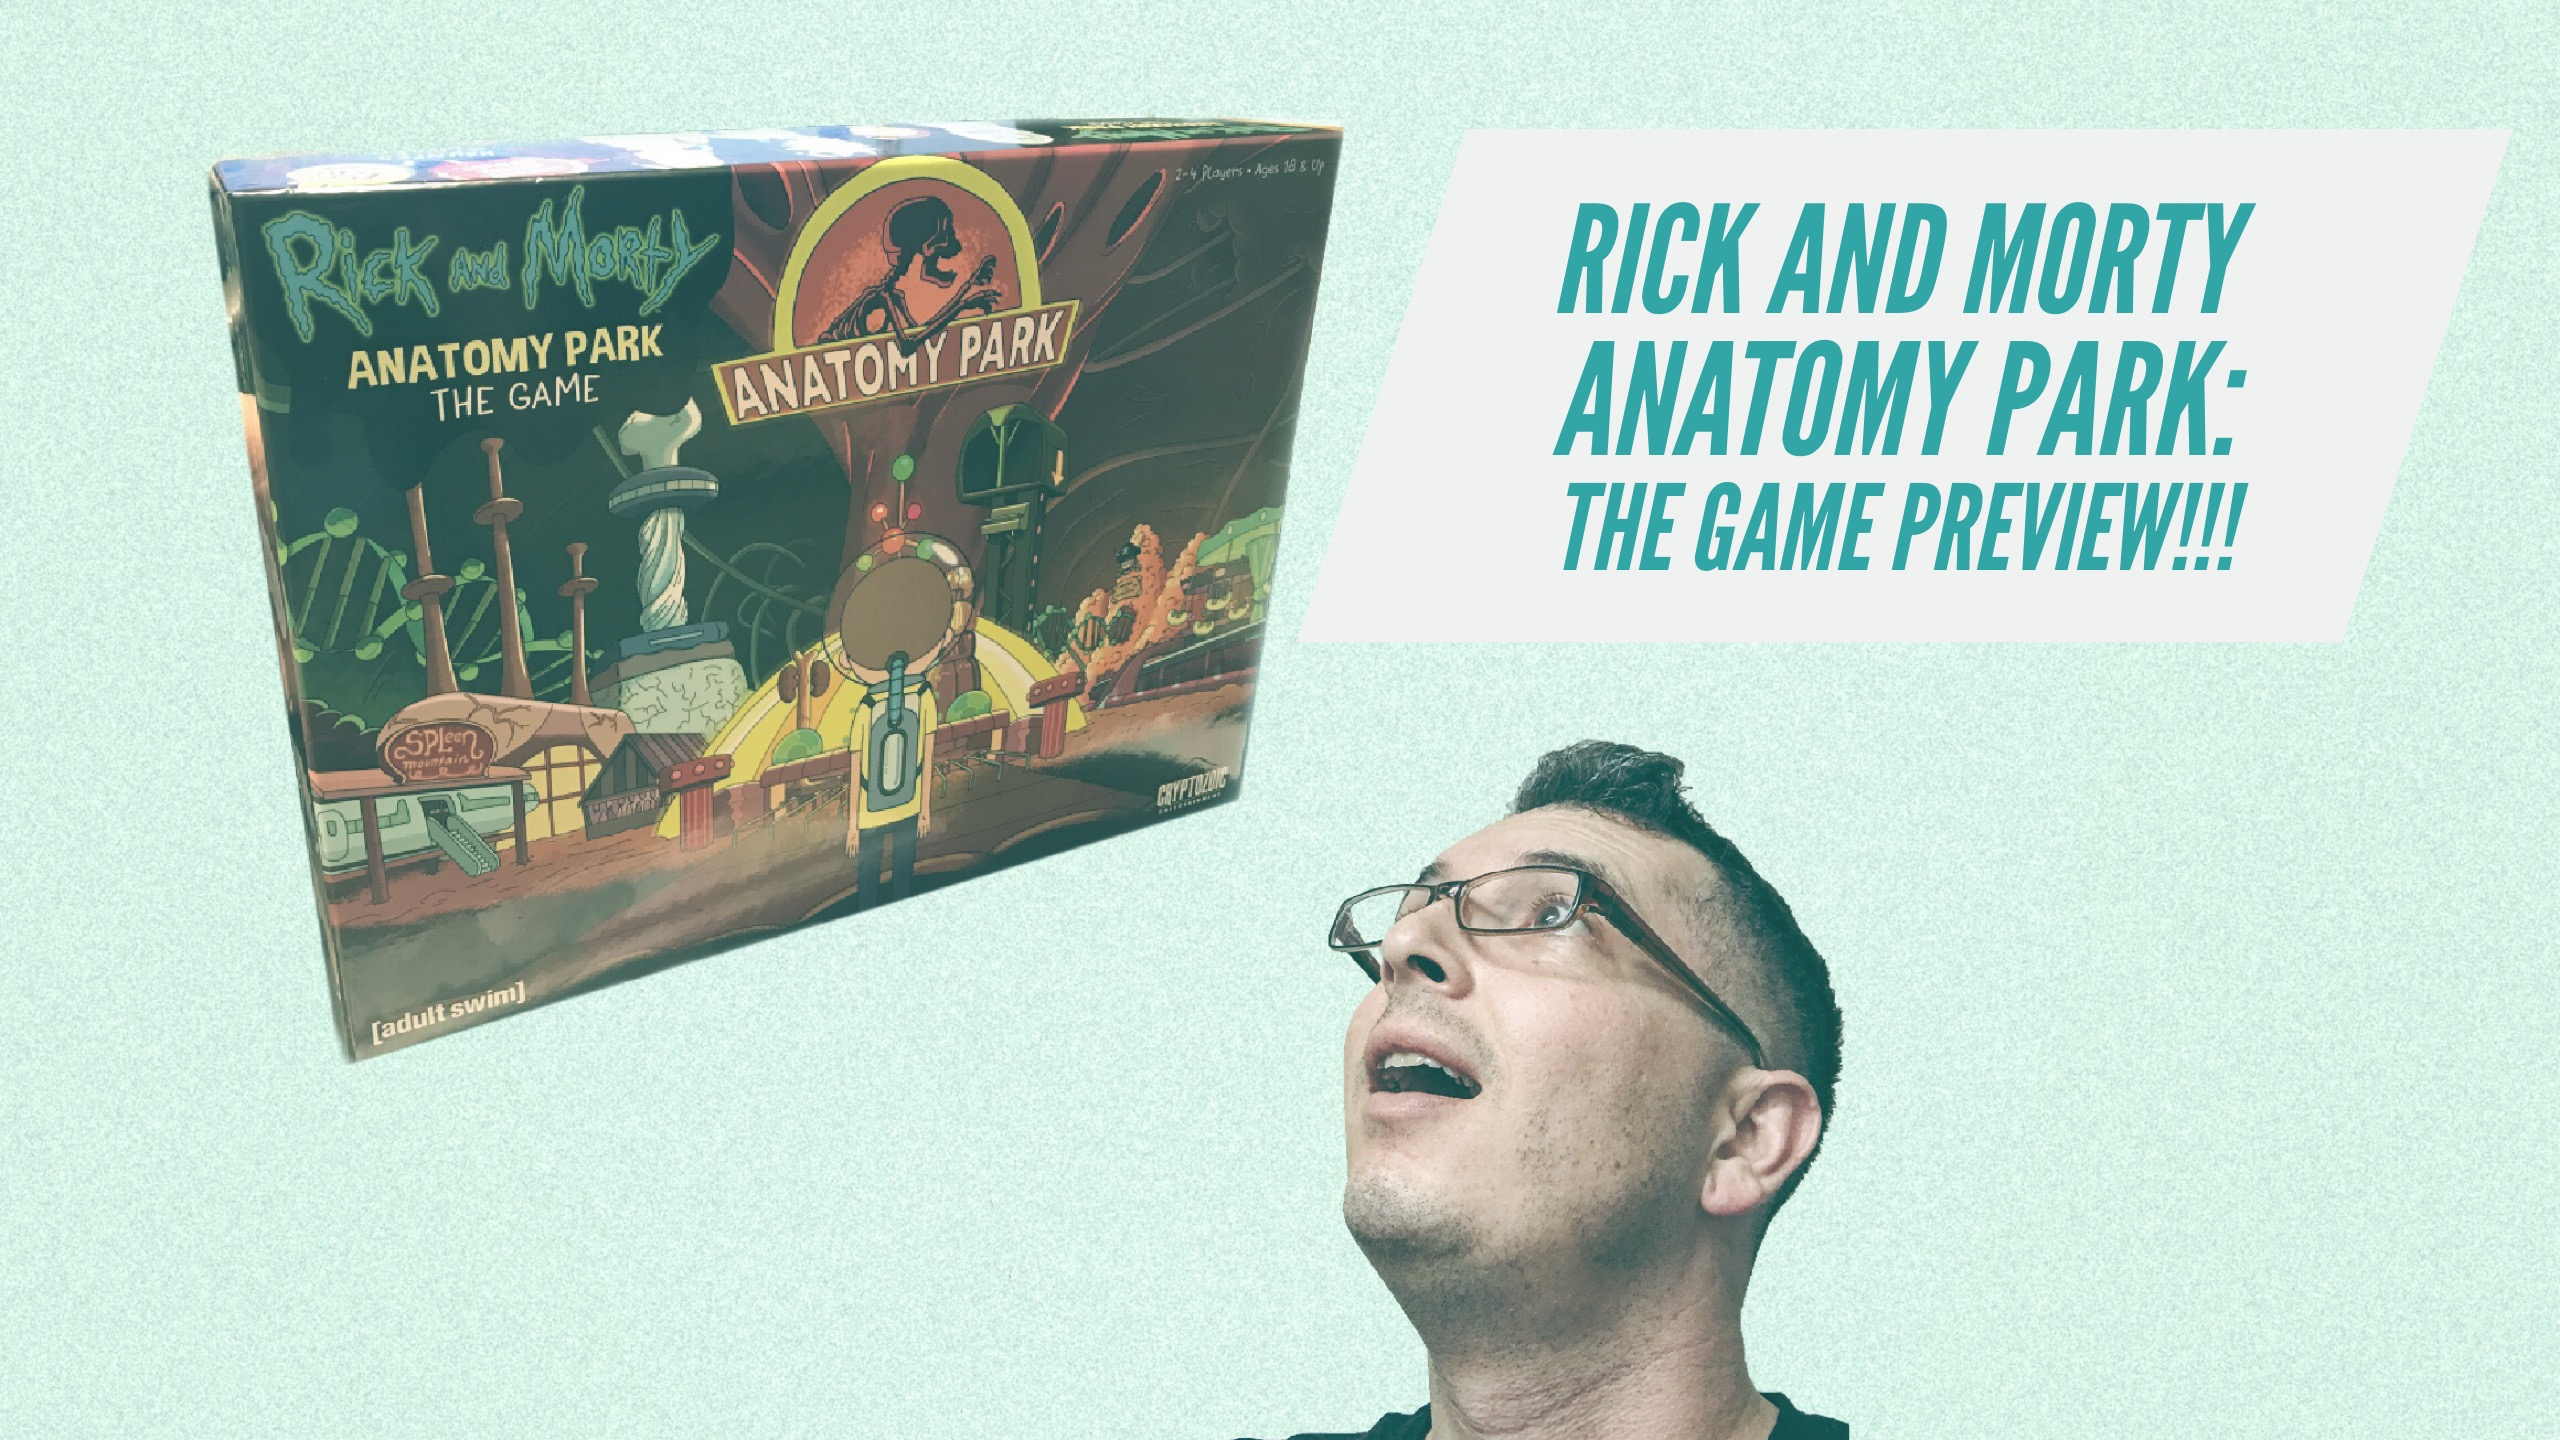 Rick And Morty Anatomy Park The Game Preview